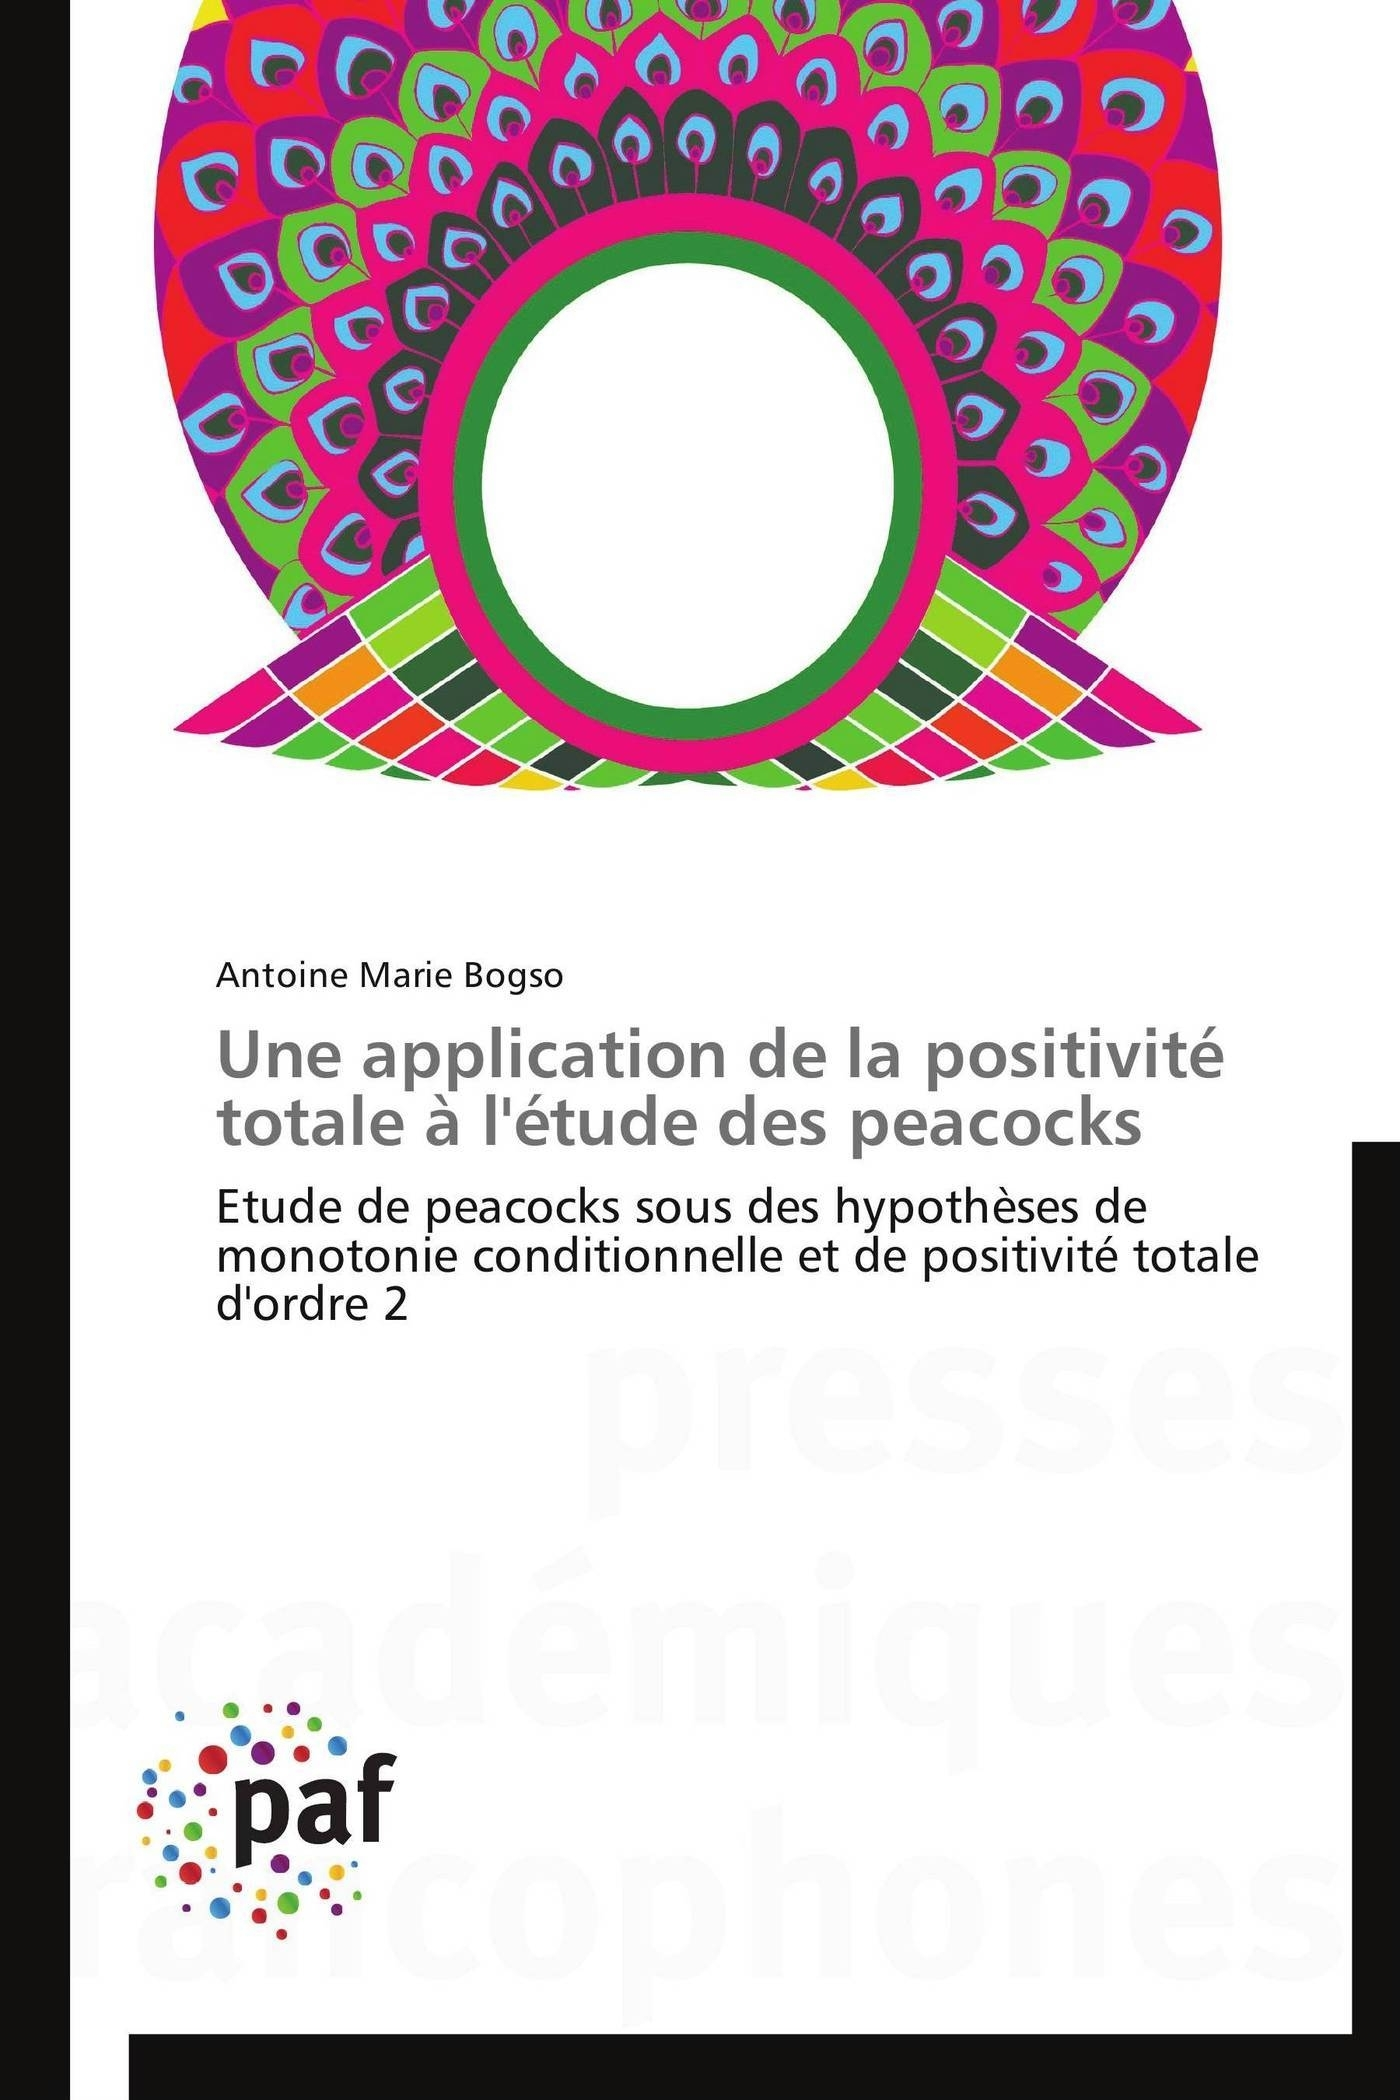 UNE APPLICATION DE LA POSITIVITE TOTALE A L'ETUDE DES PEACOCKS